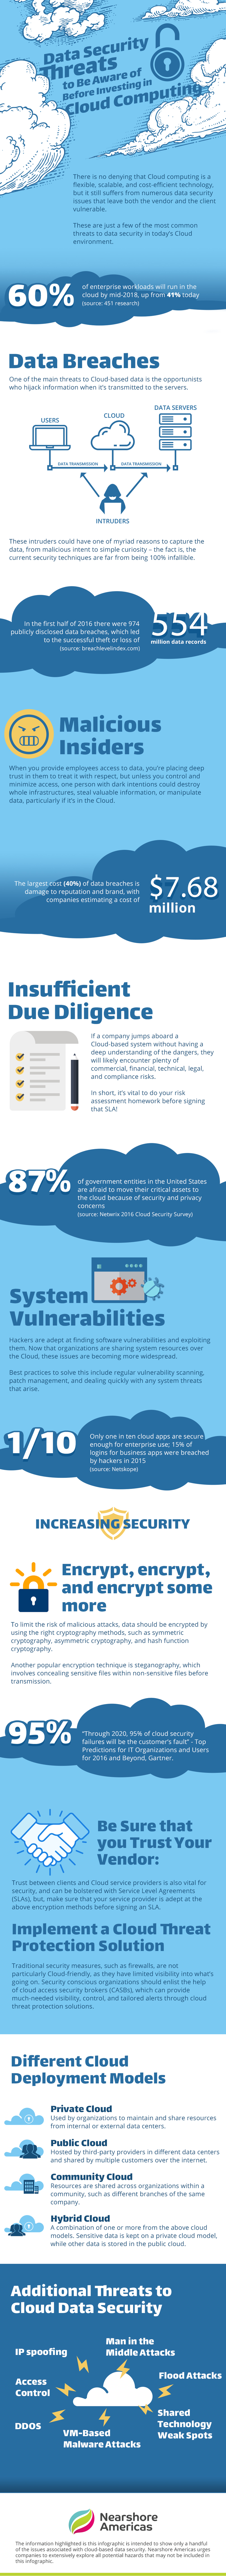 Infographic: Data Security Threats To Be Aware of Before Investing in The Cloud